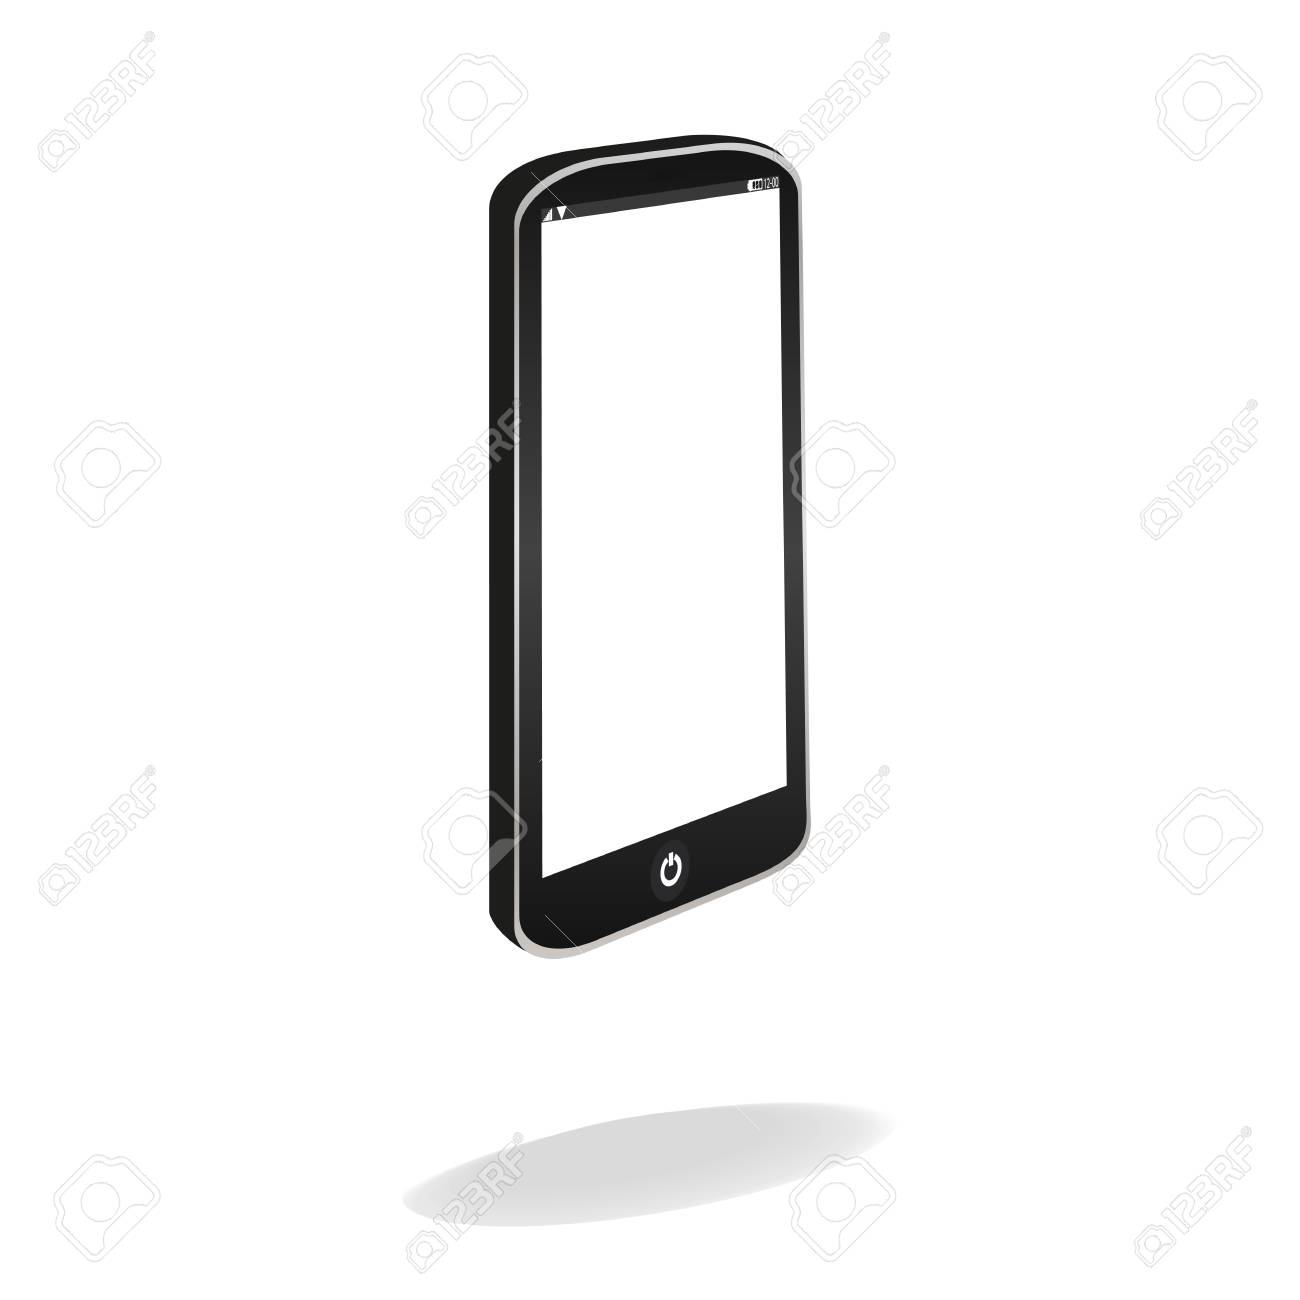 mobile phone Stock Vector - 18160060